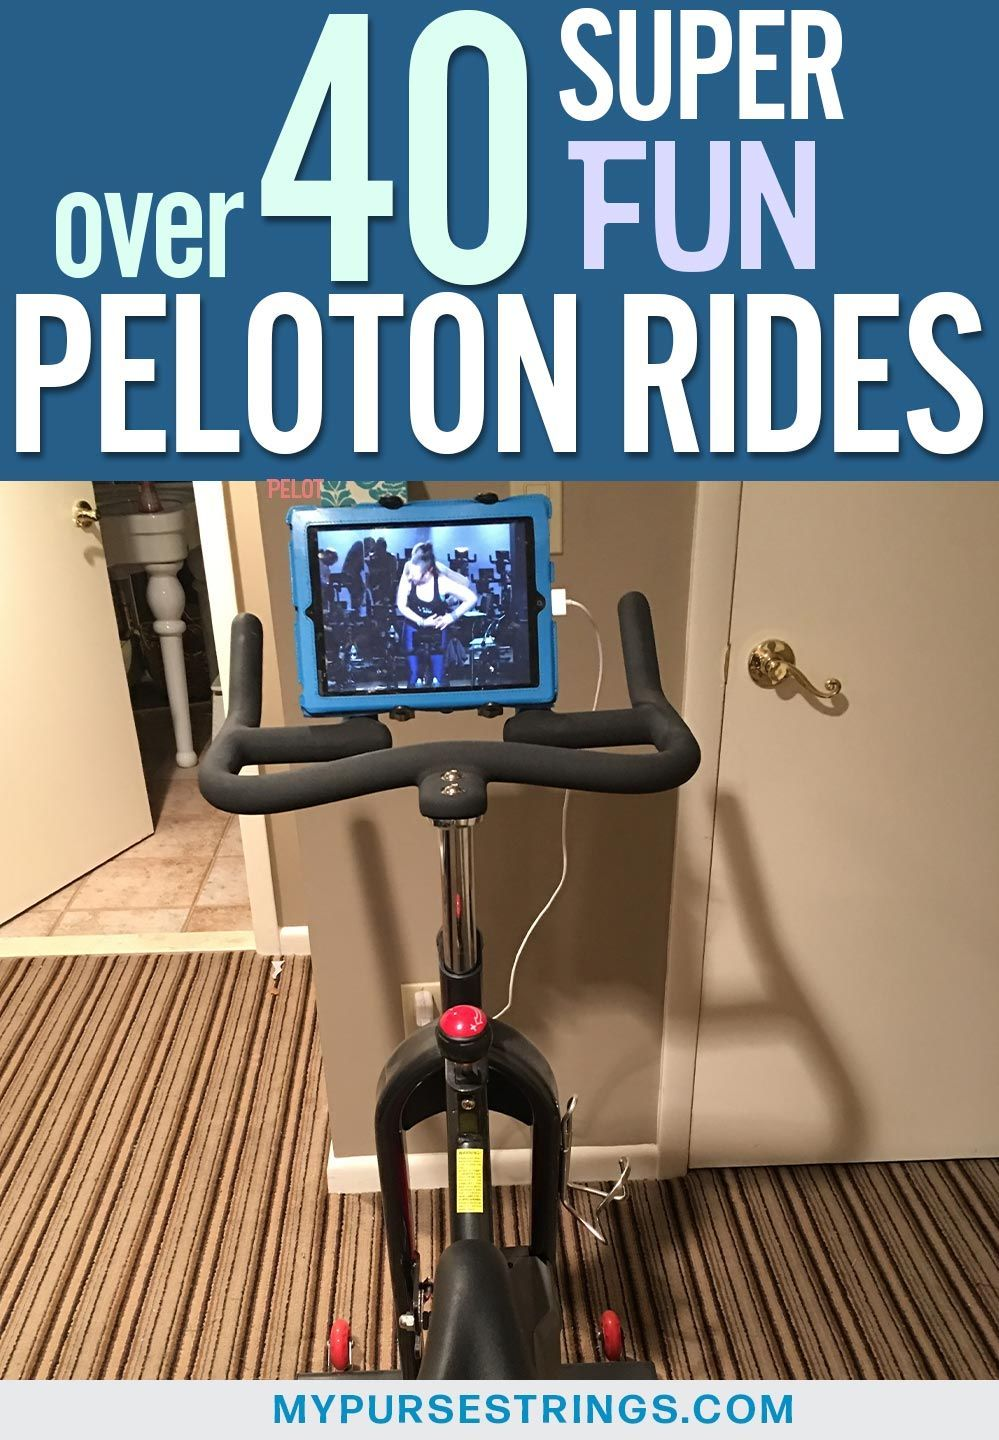 How to find the best peloton rides fun themed fan